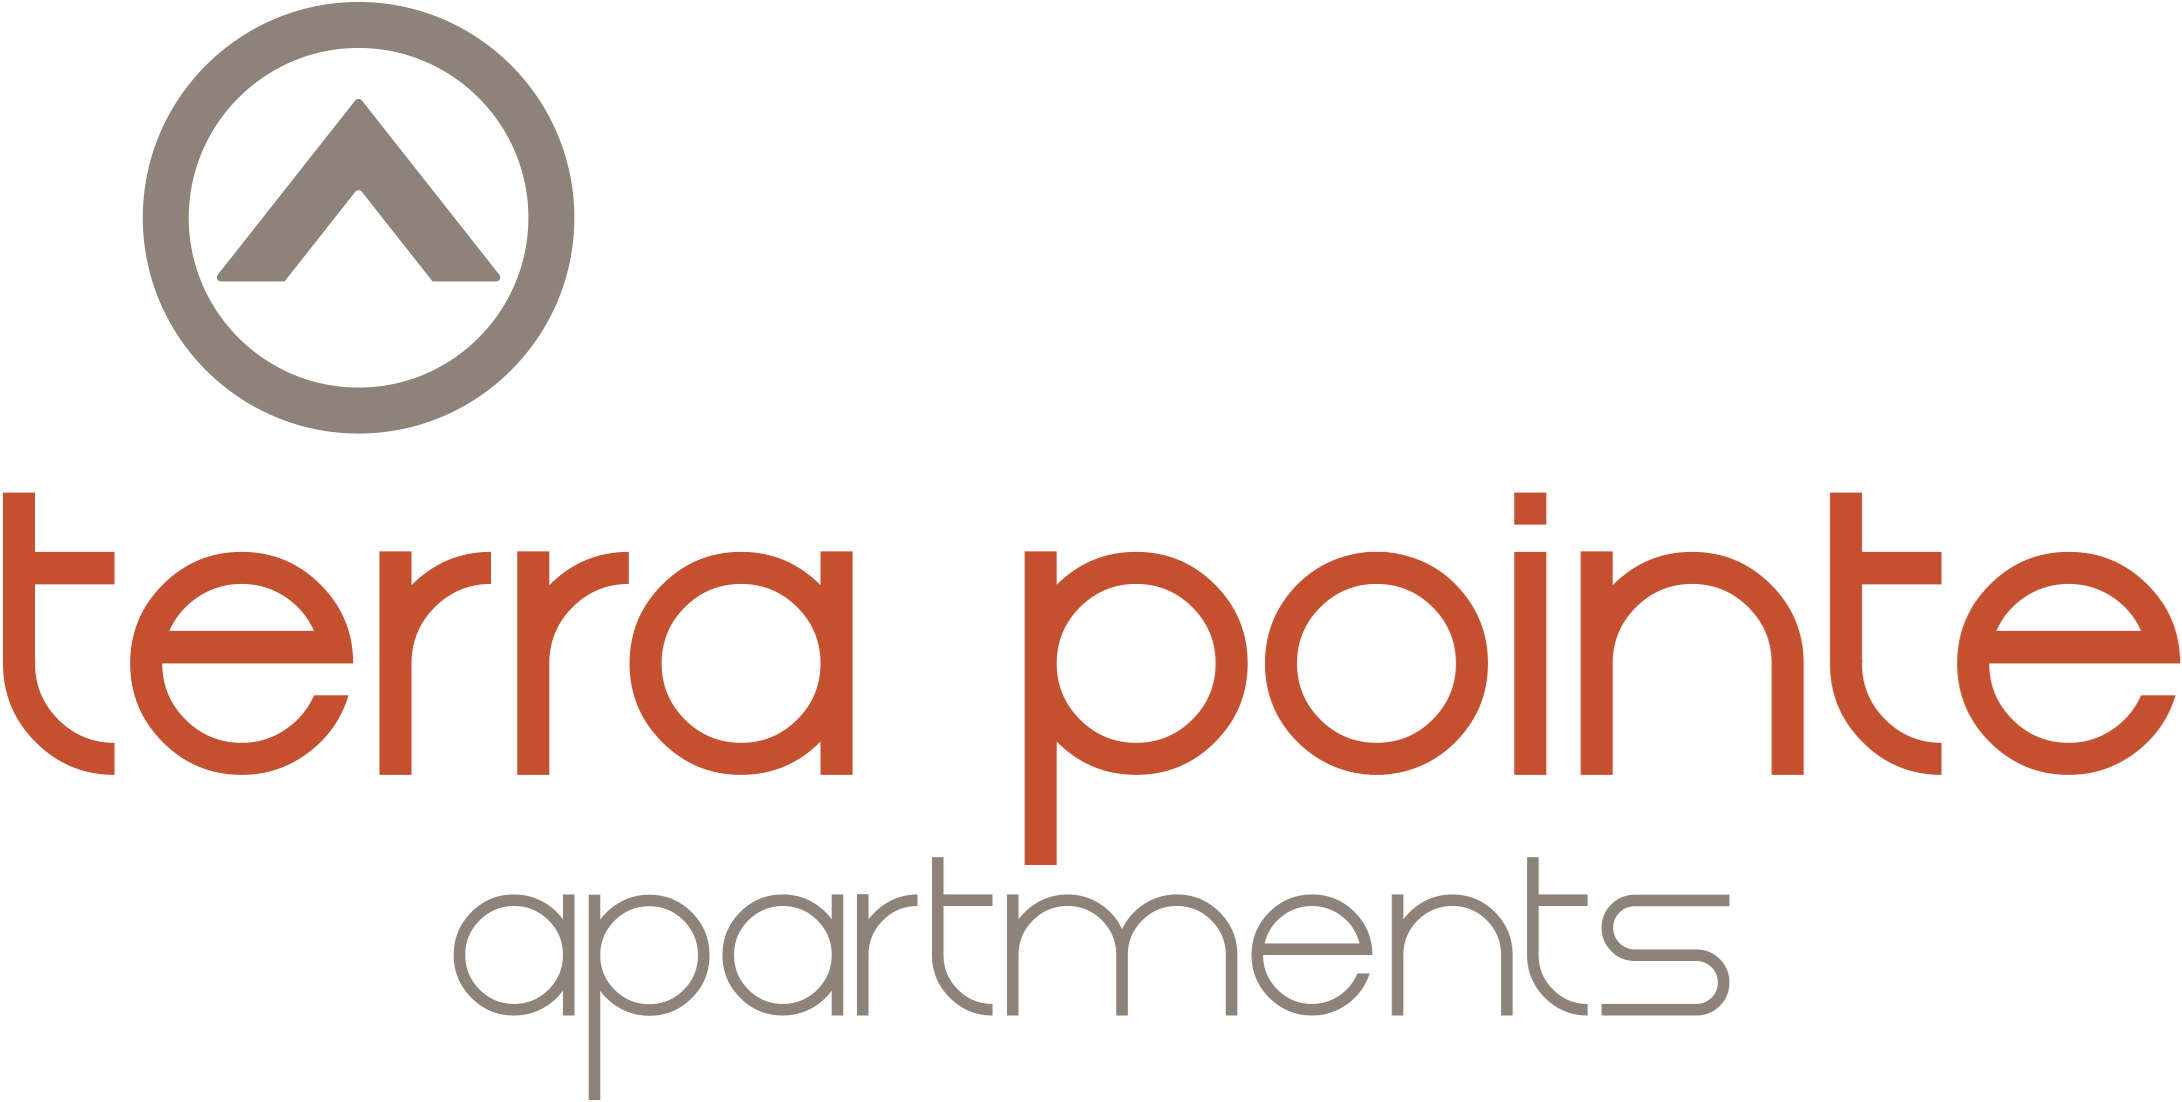 Terra Pointe Apartments, St. Paul